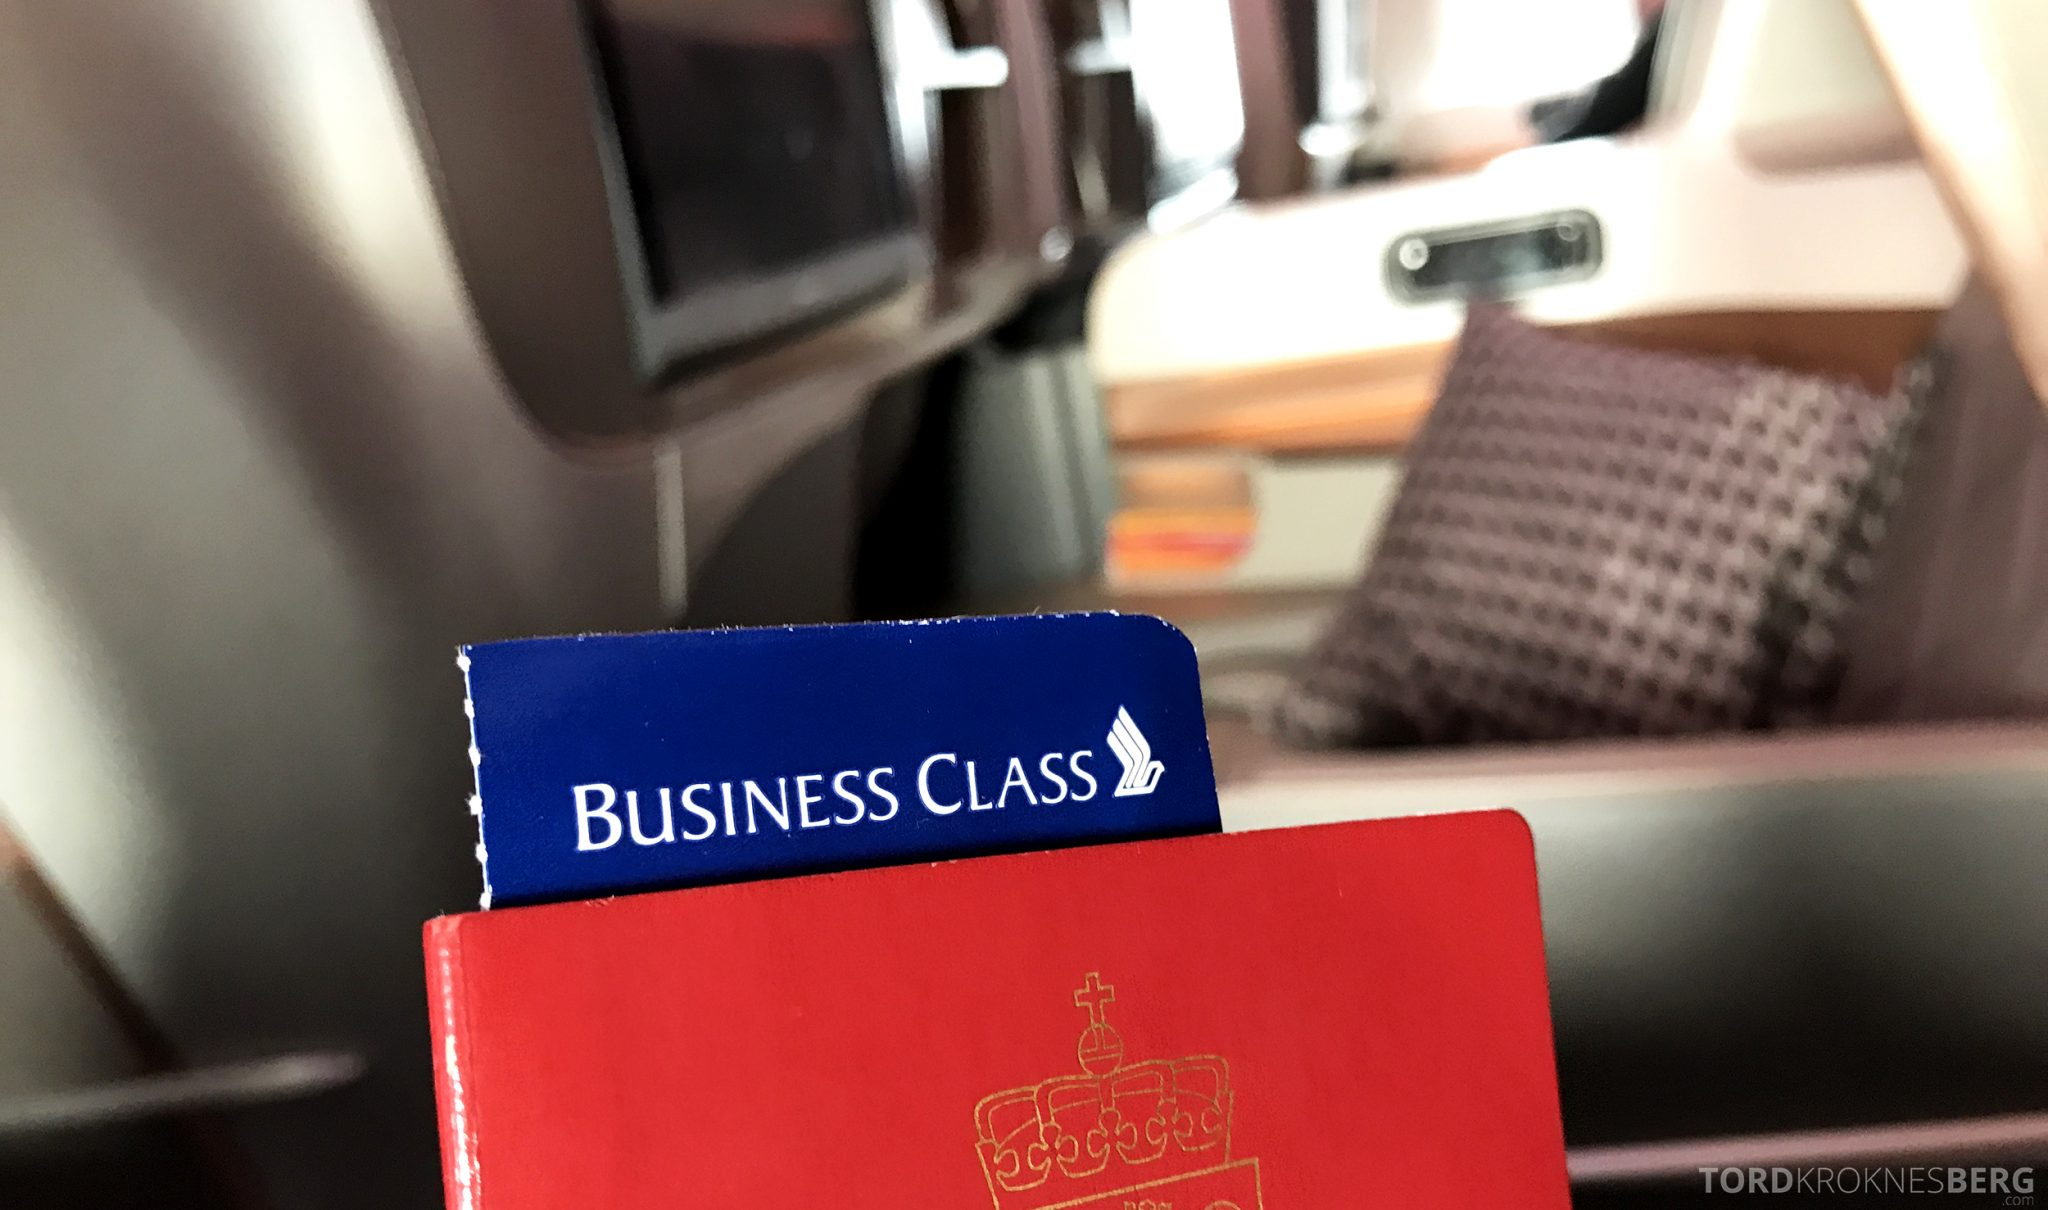 Singapore Airlines Business Class Moskva Stockholm billett